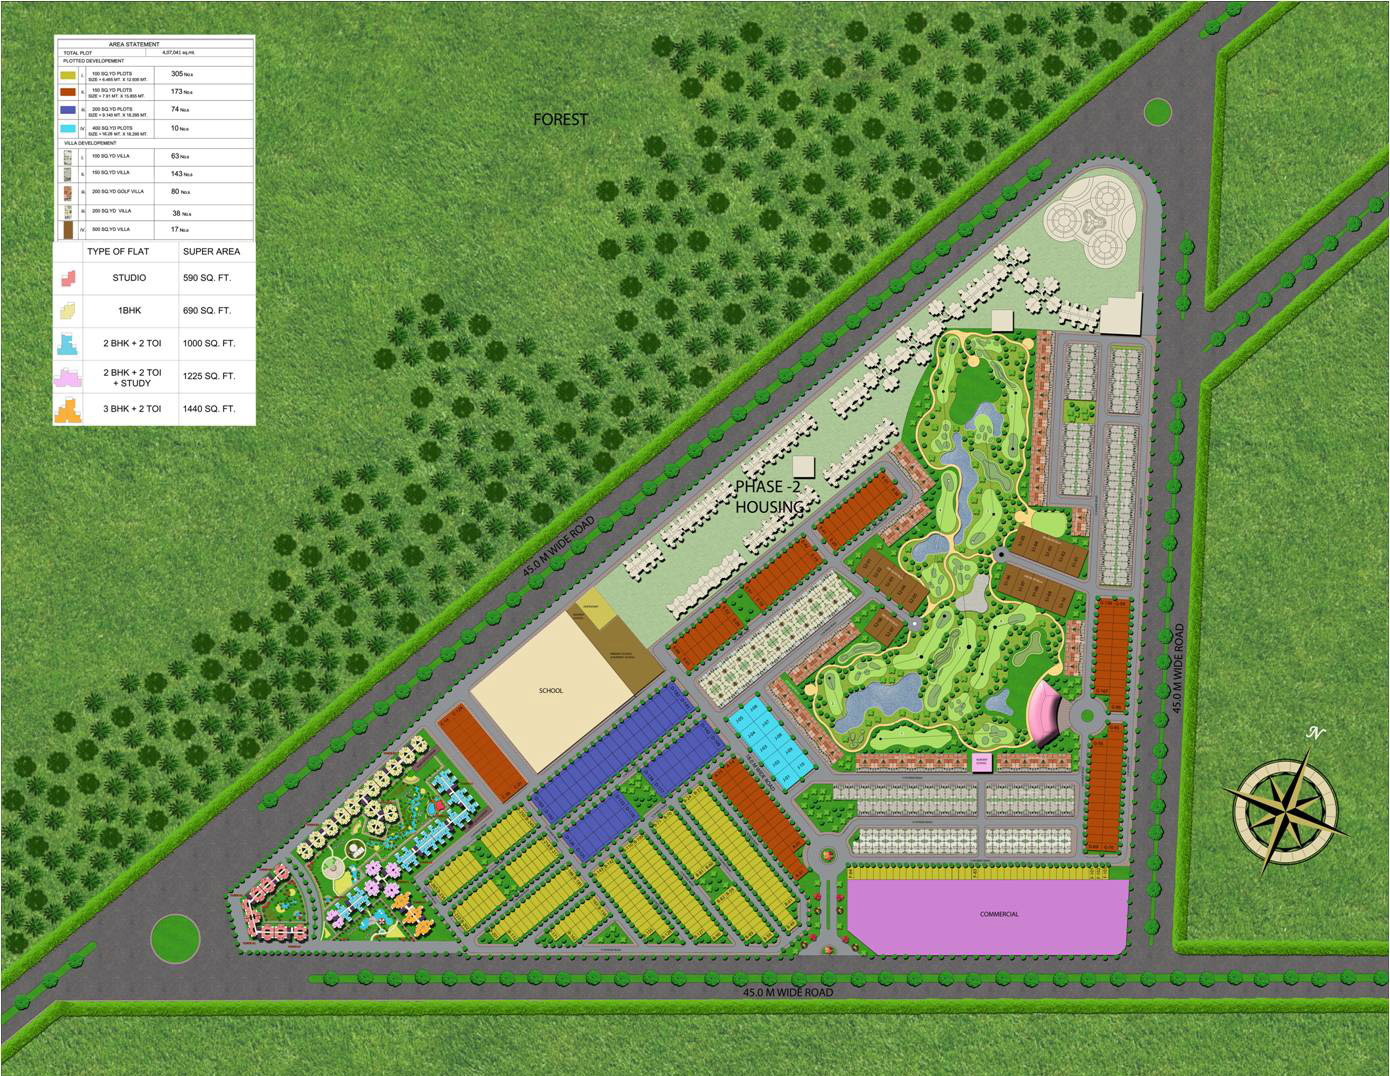 supertech golf village site plan